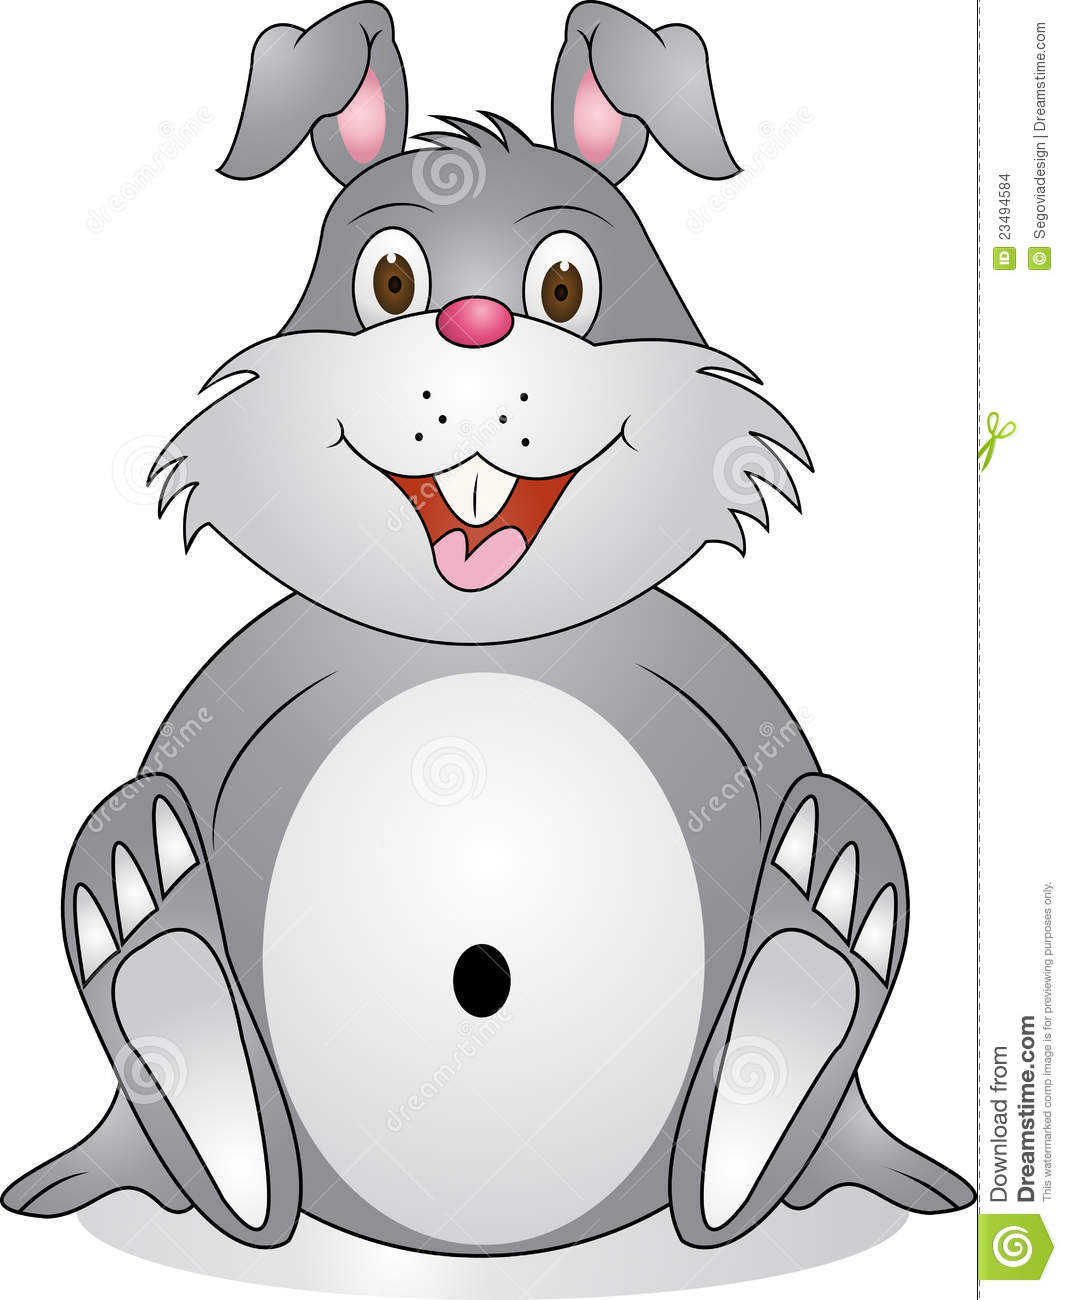 Stock Images: Funny rabbit cartoon